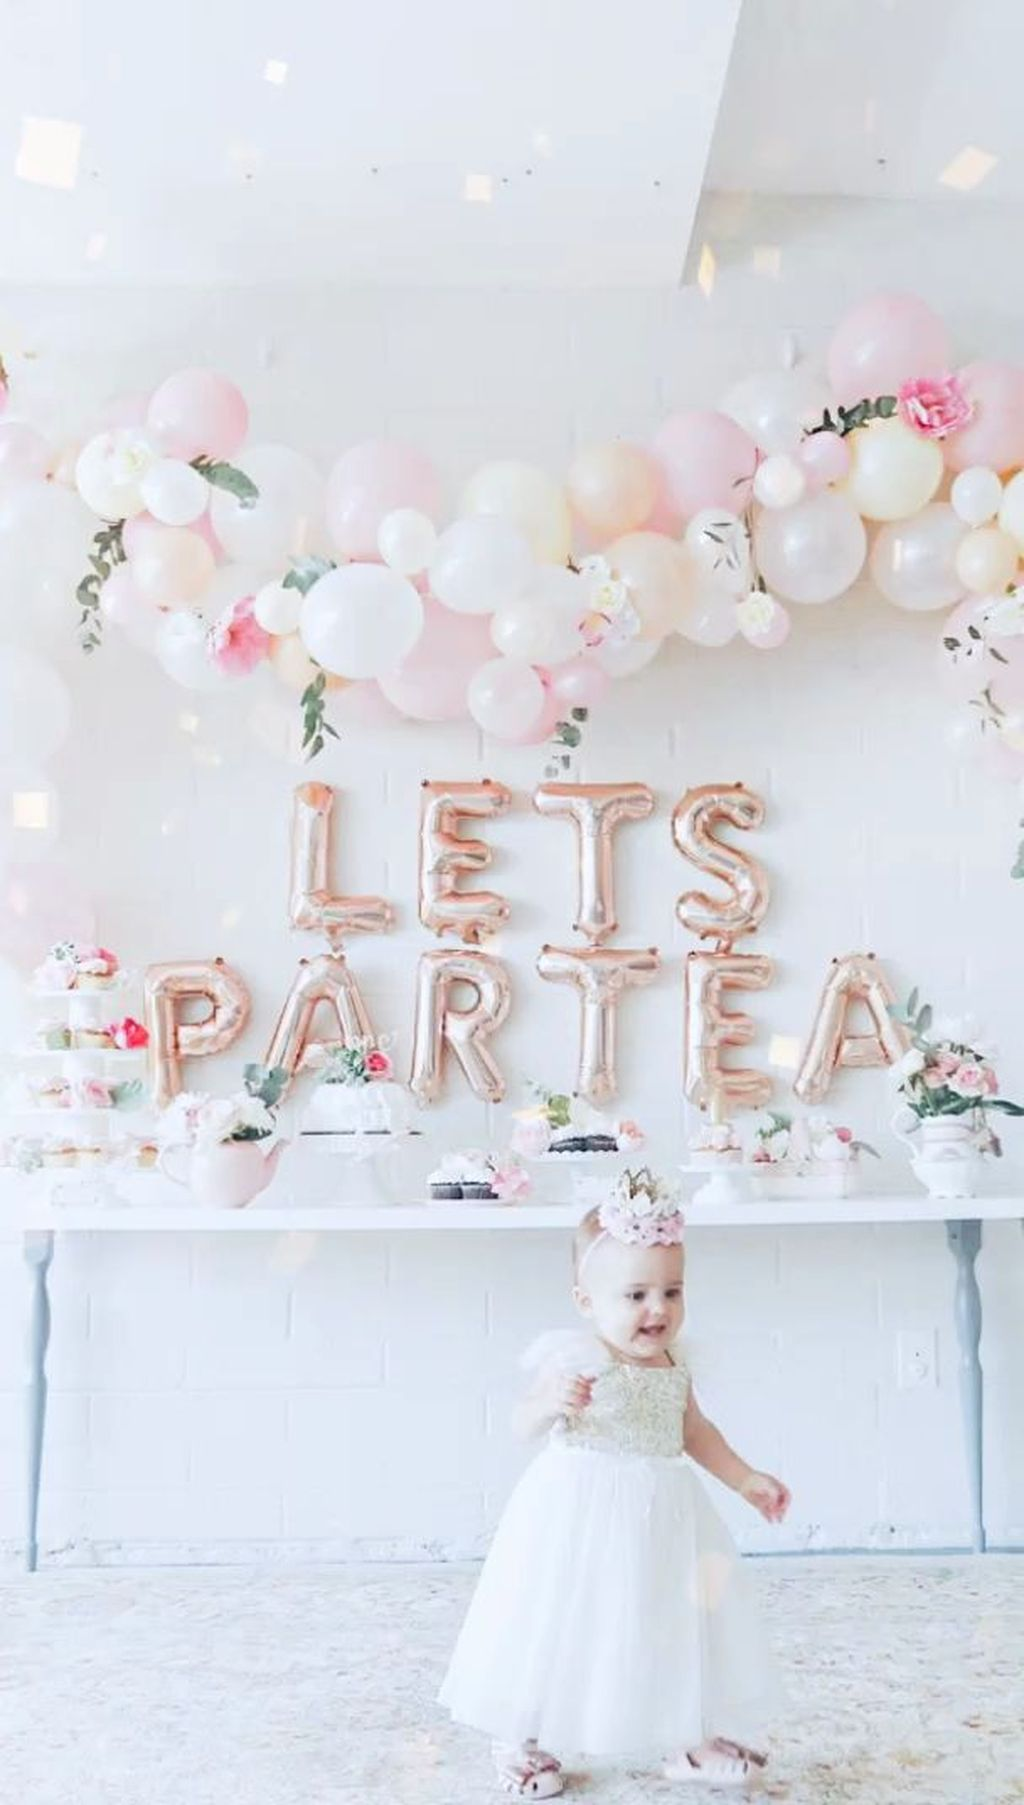 Fabulous Floral Theme Party Decor Ideas Best For Summertime 08